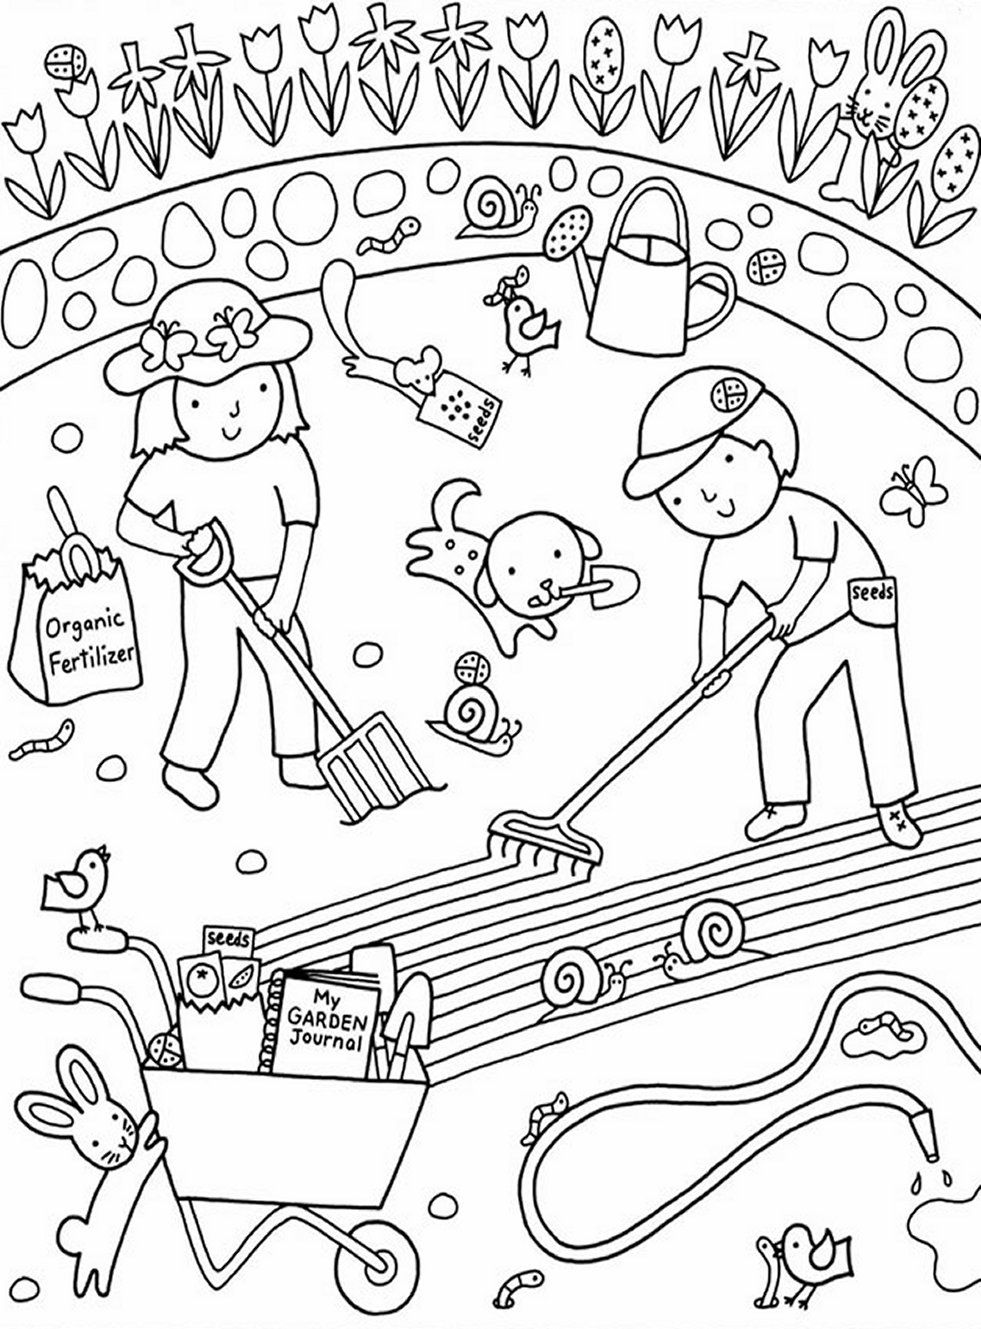 gardening pictures to colour gardening coloring pages for kids pictures gardening to colour